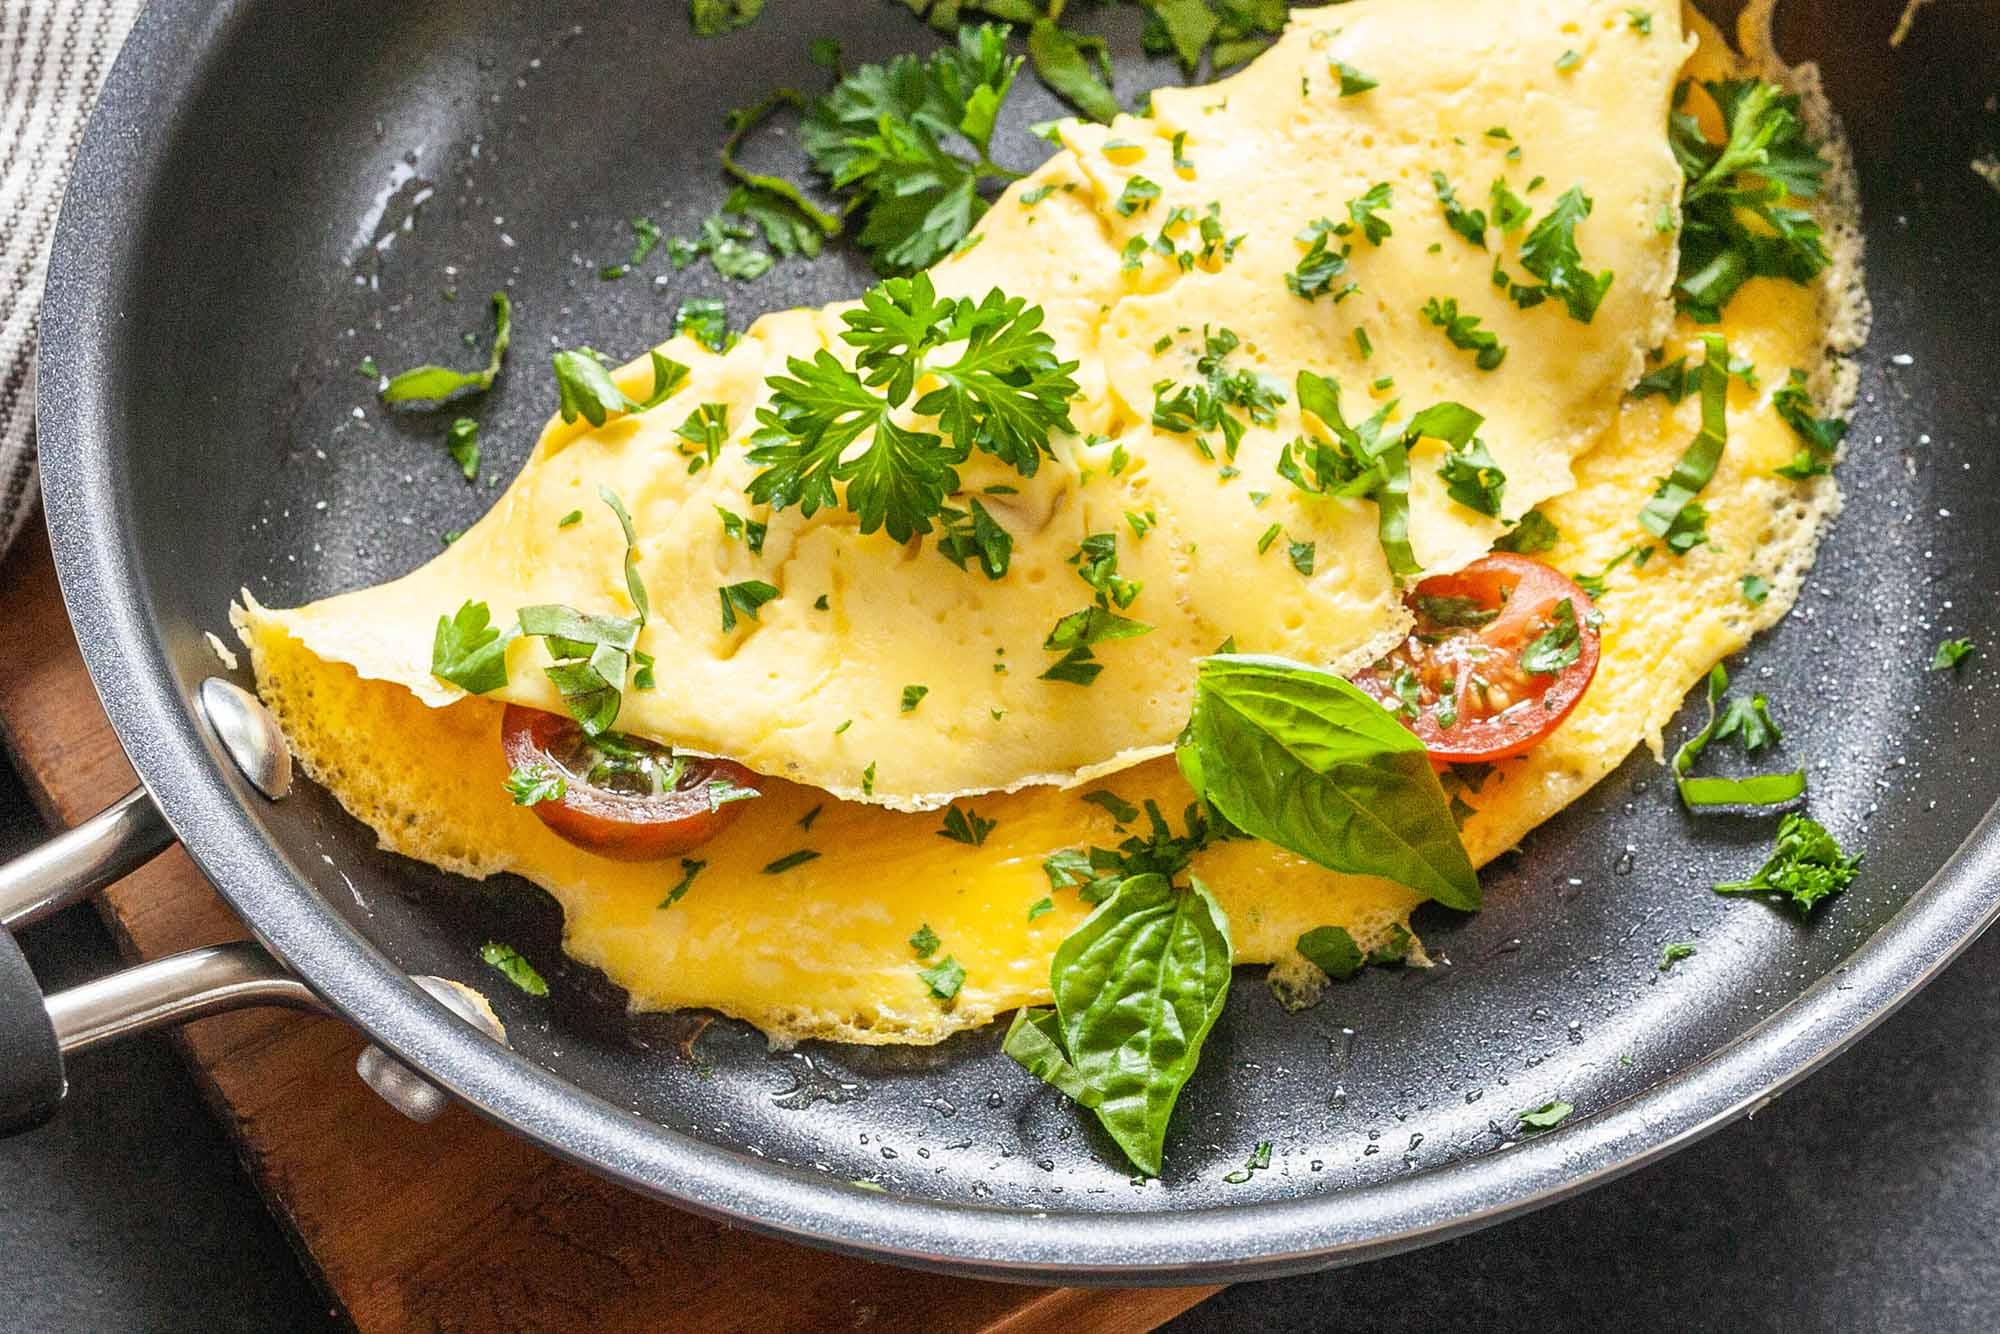 omelet at bed and breakfast